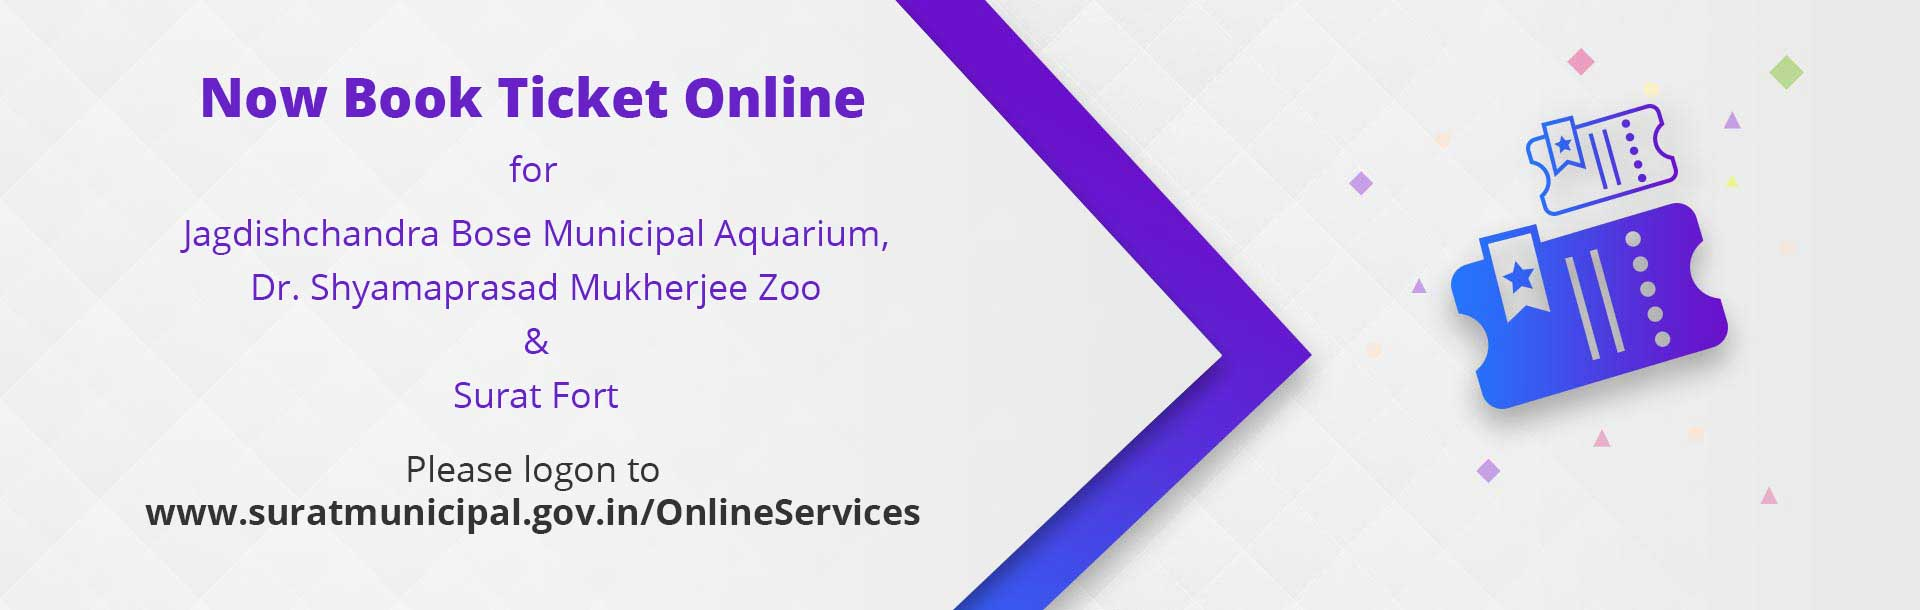 Online Ticket Booking for Aquarium- Now Available